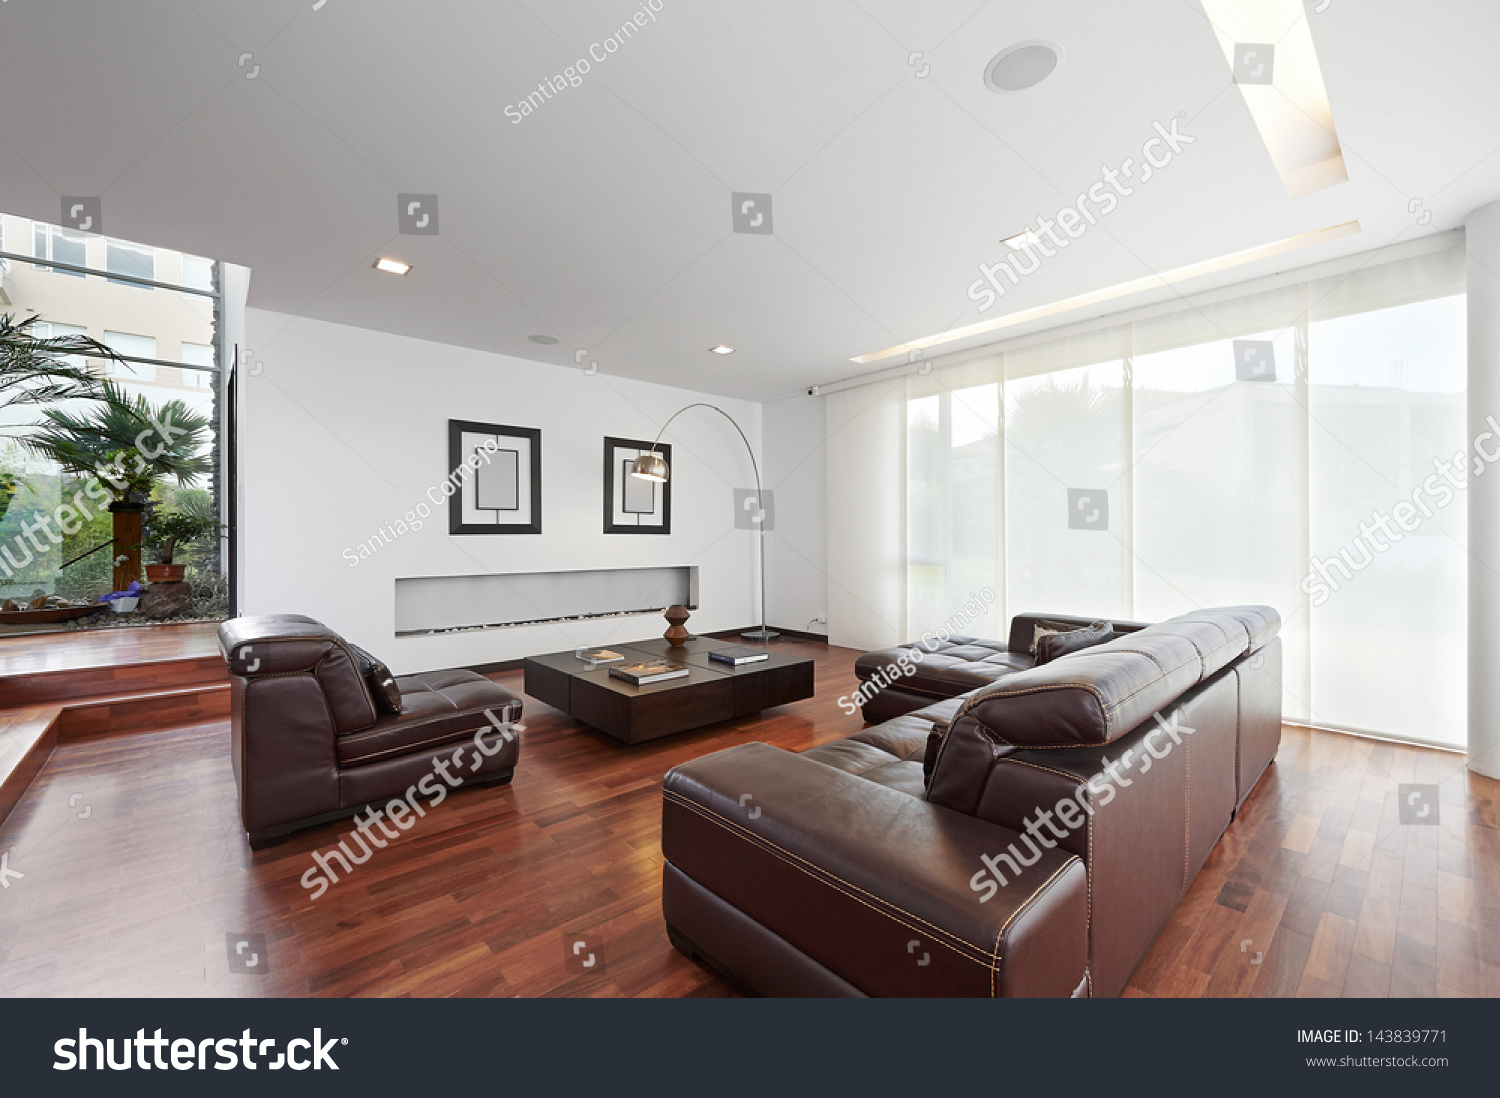 Bright space - an interior of an elegant living room | EZ Canvas